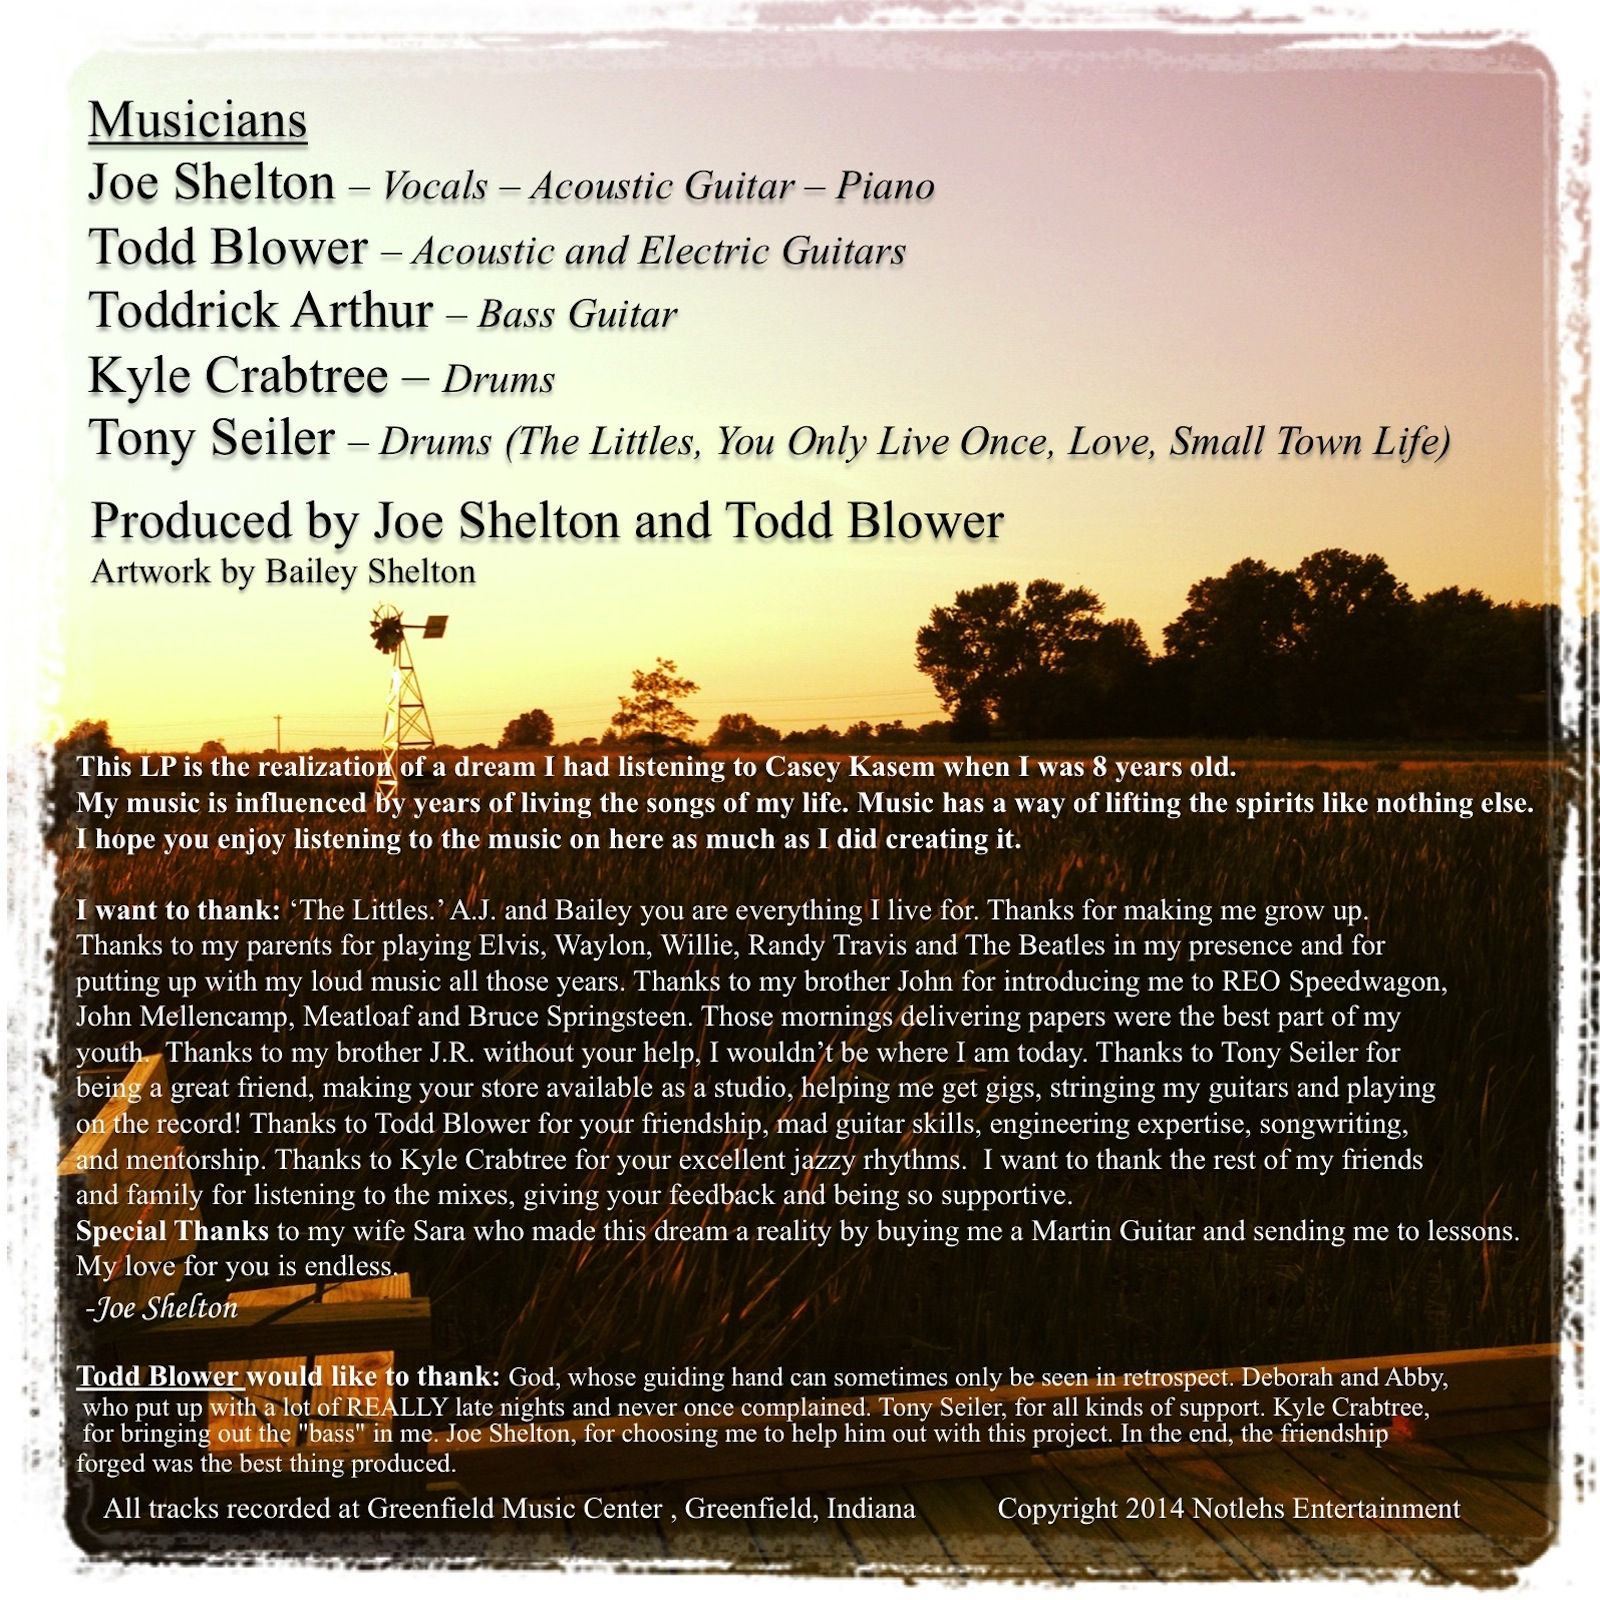 The Littles Album Credits Page